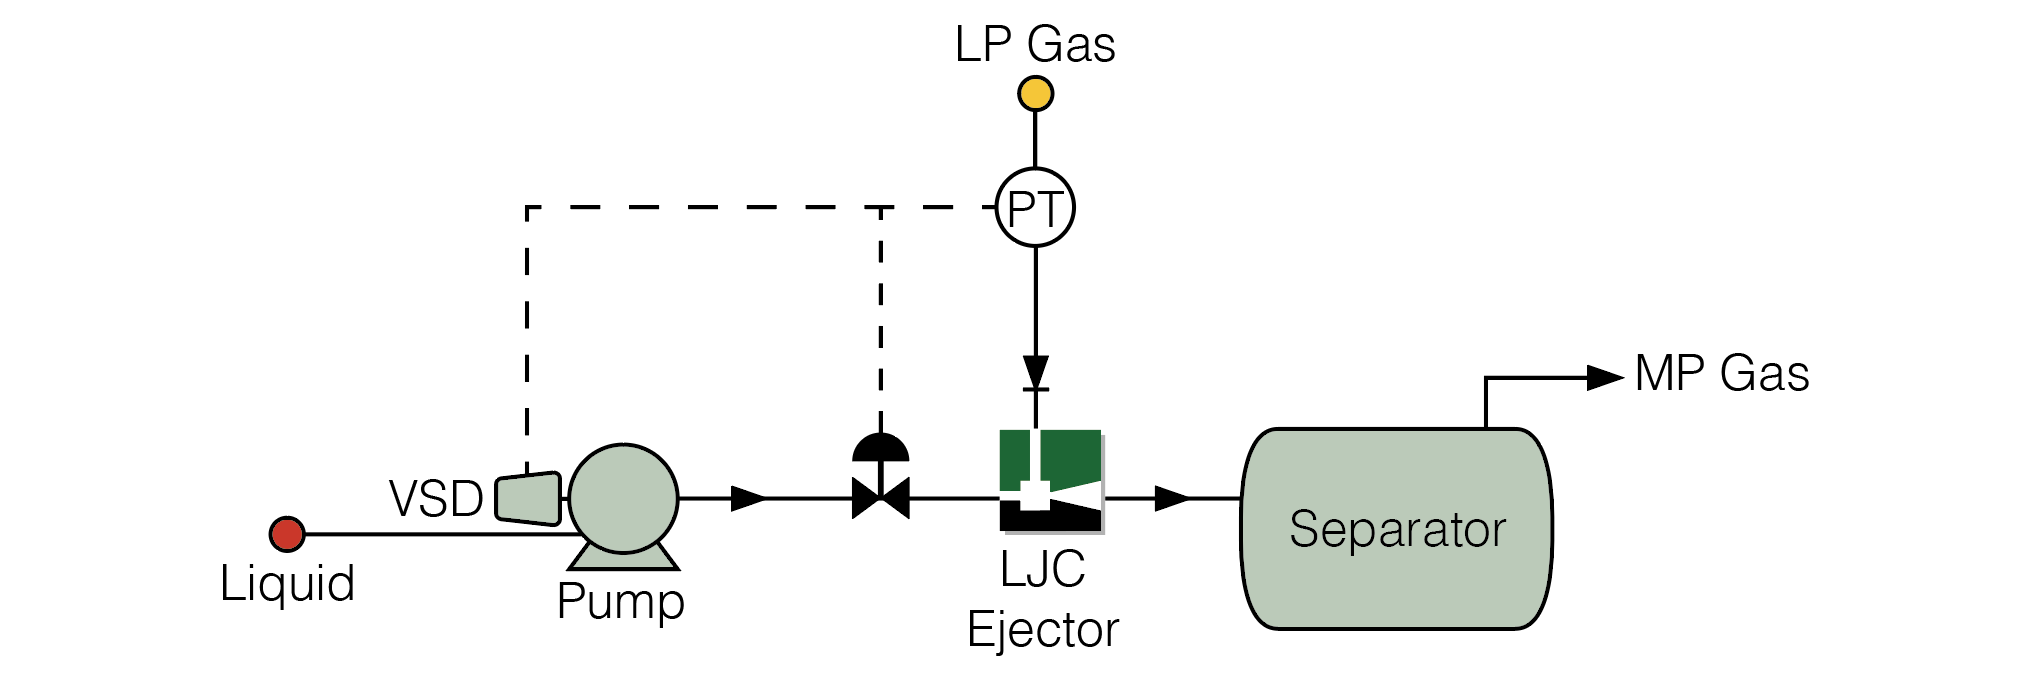 LJC Ejector Control using Motive throttling